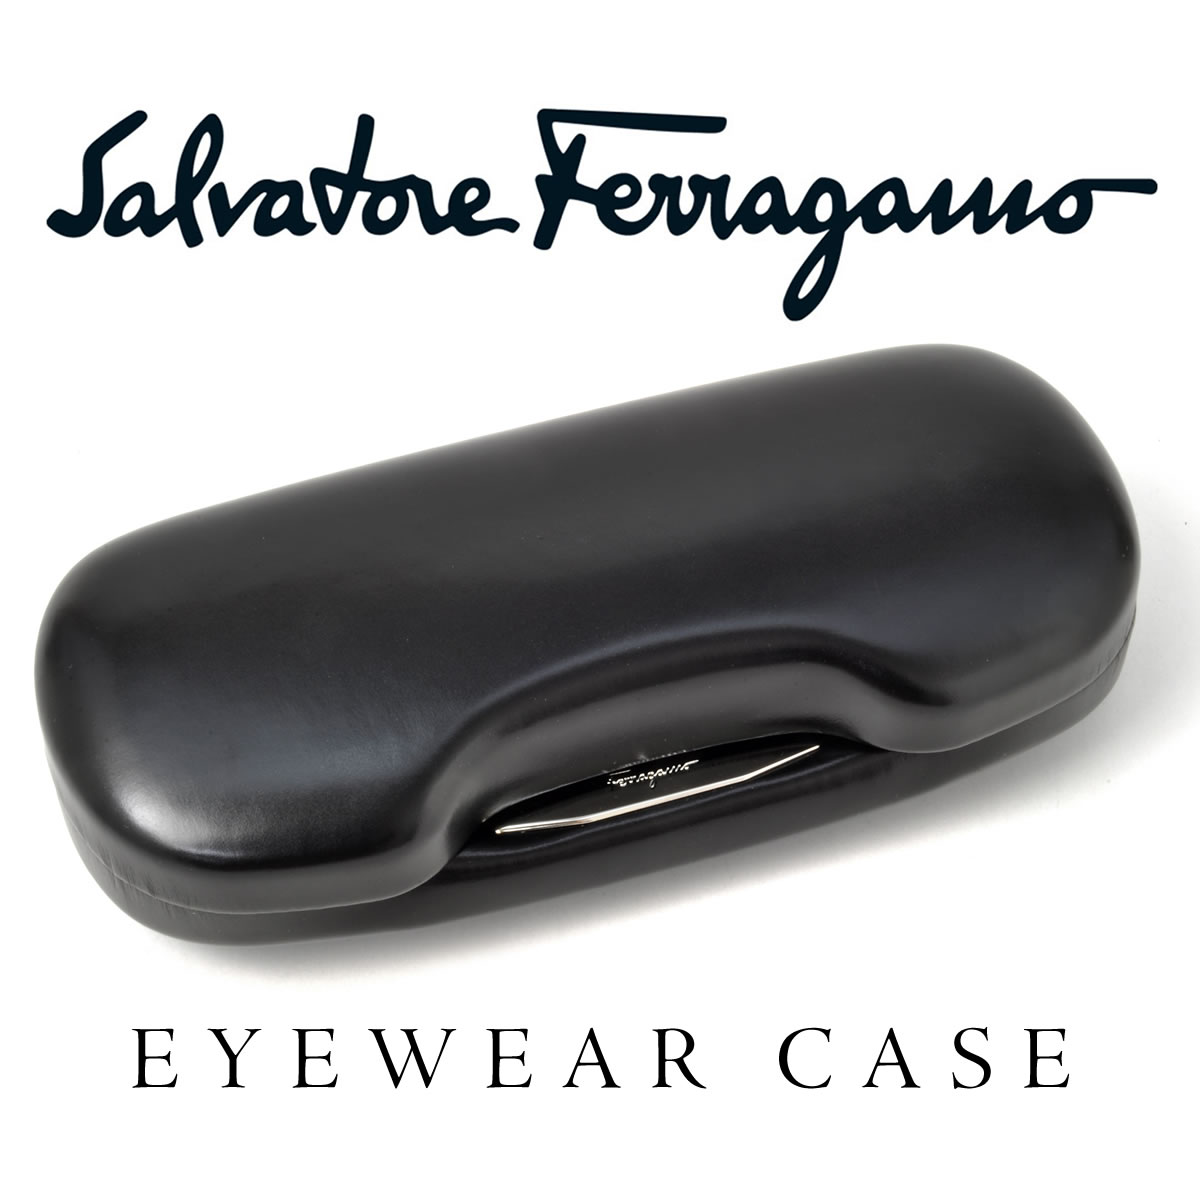 Optical Shop Thats | Rakuten Global Market: Salvatore Ferragamo ...